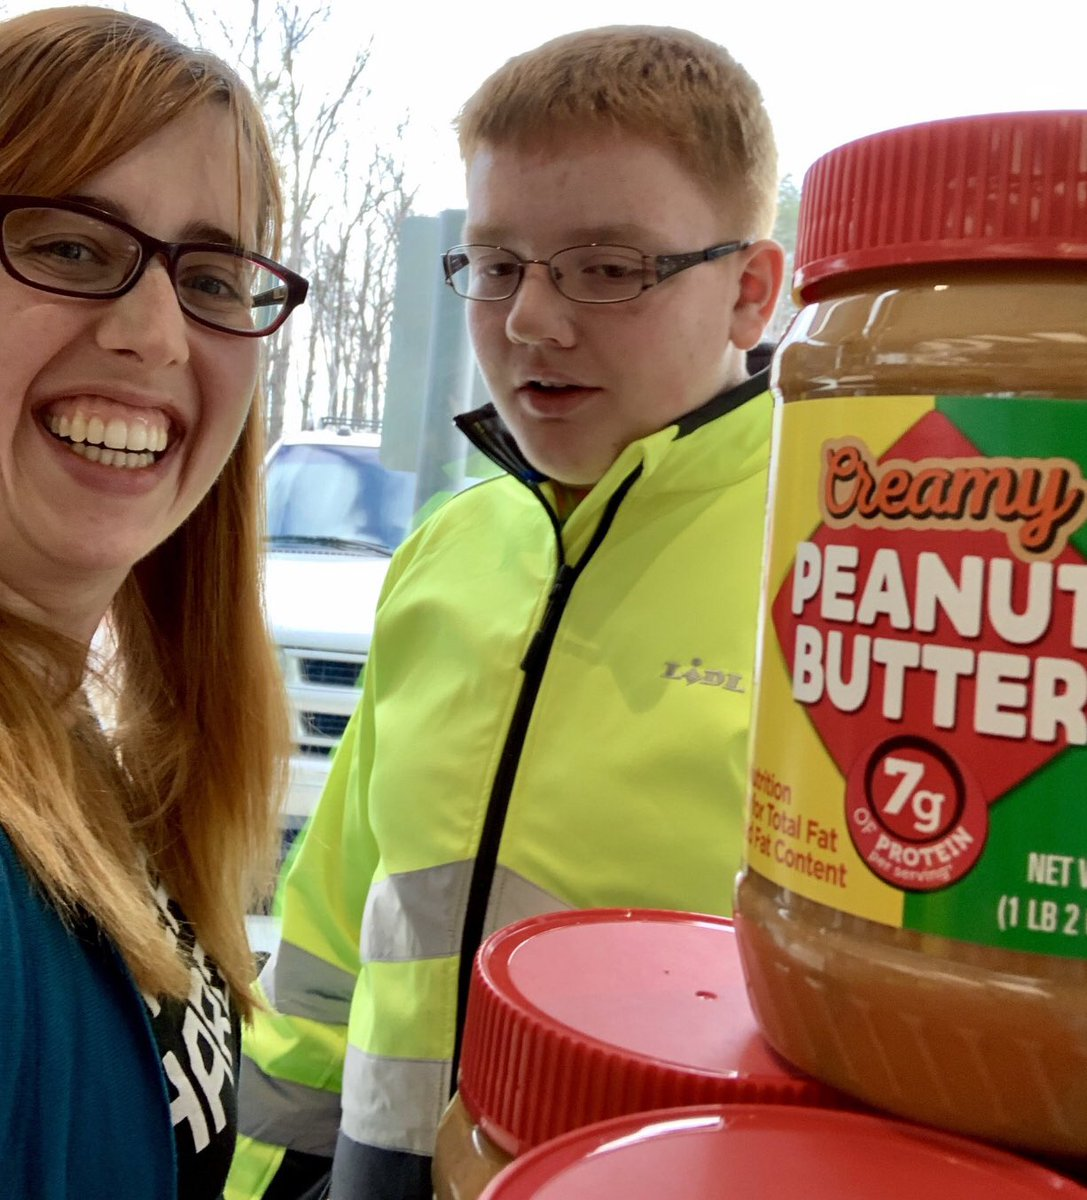 Shared my peanut butter today. It was good. A favorite teacher & friends came to see me,and some people asked me to sign their jars. That was weird. But also kind of awesome. I'm happy. Thank you all the nice people.  @LidlUS @dandelionmama #BeanutButter